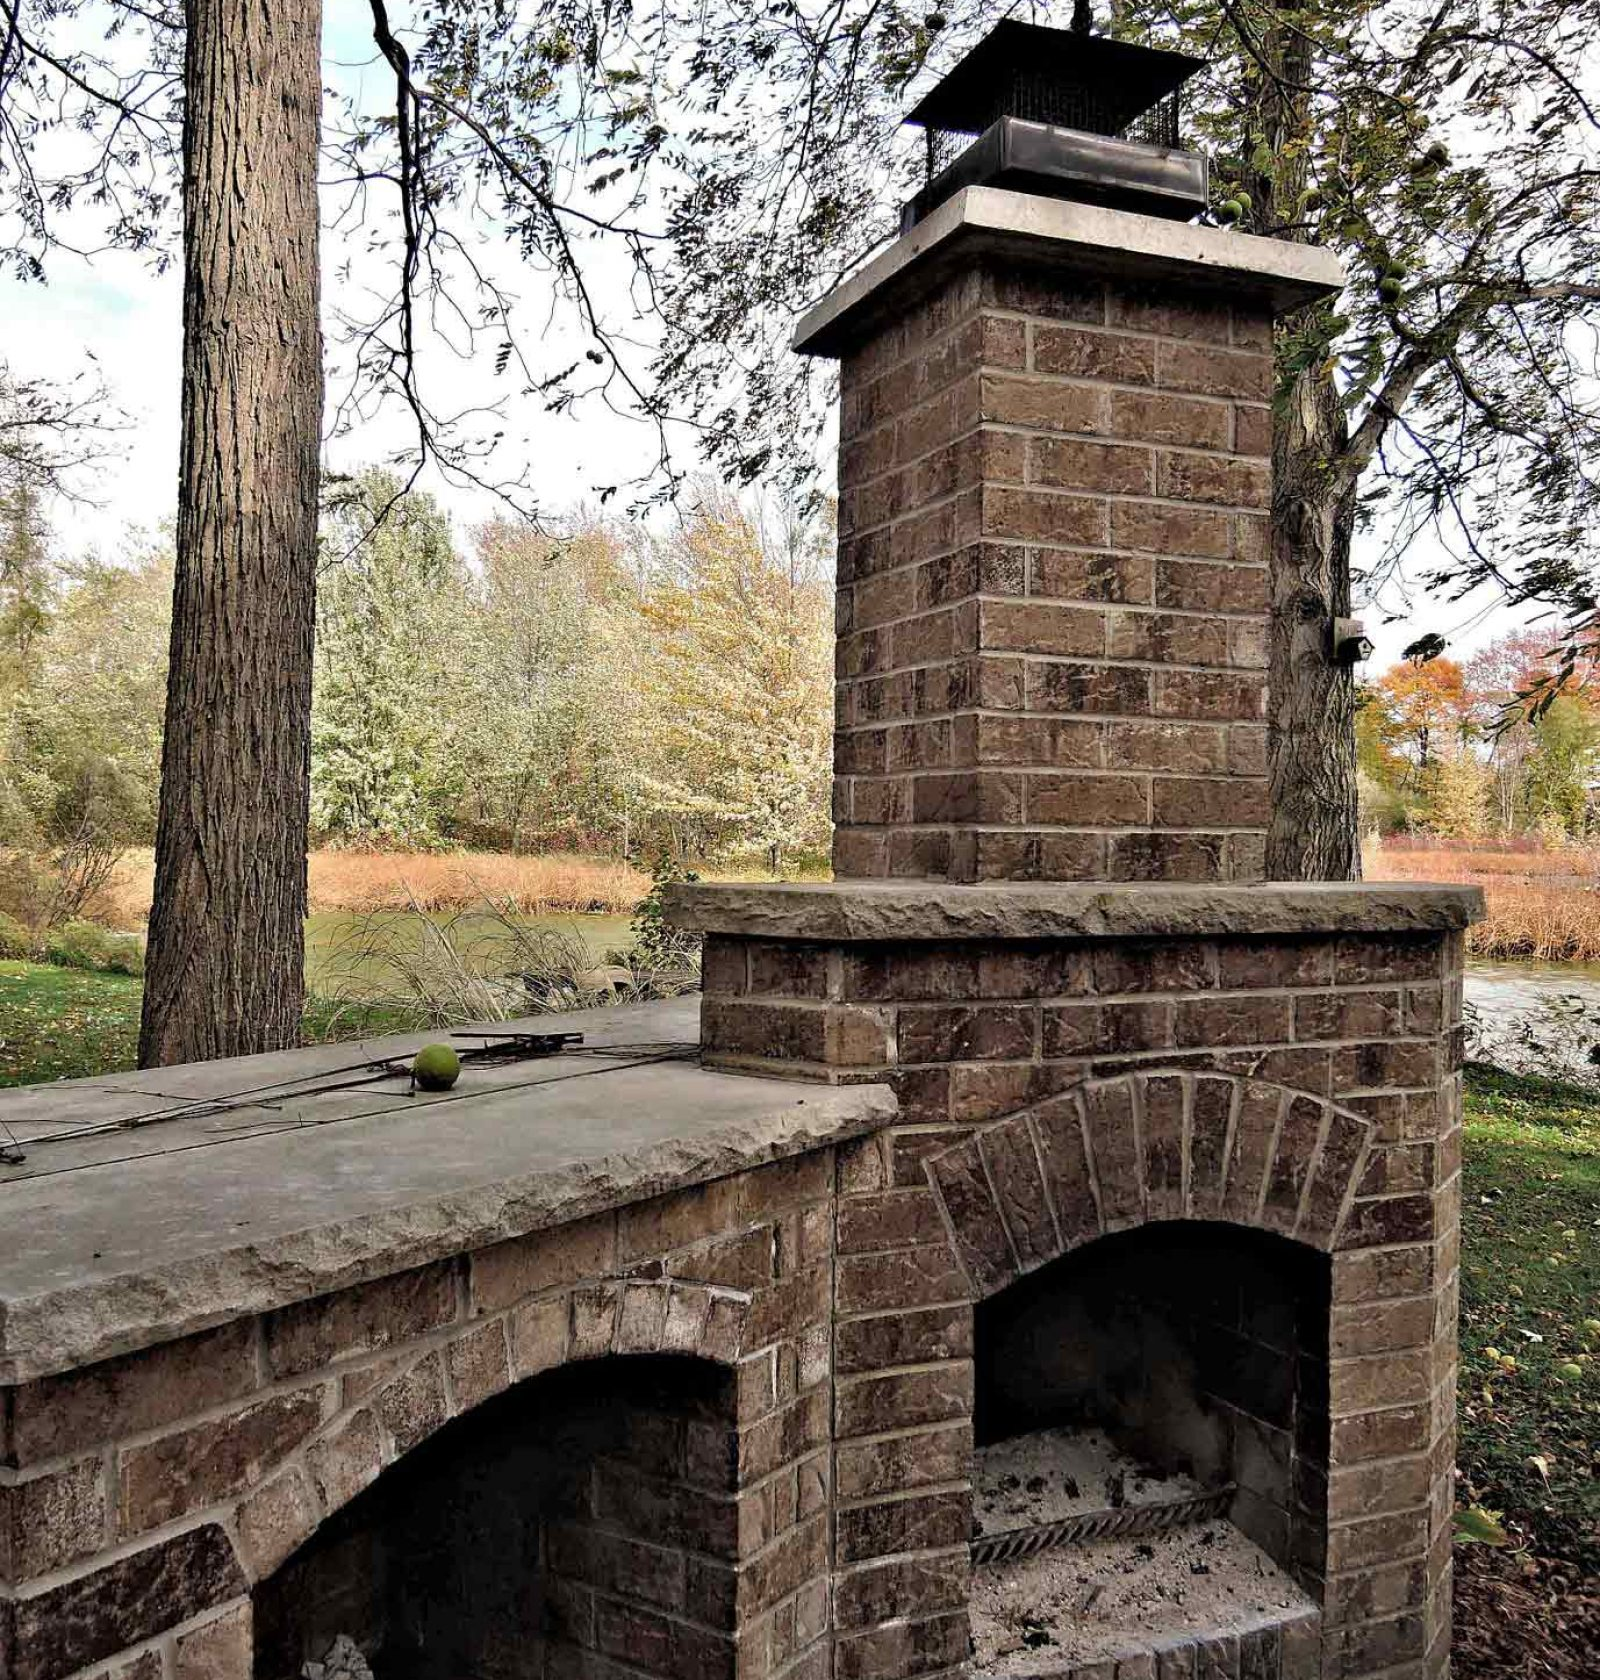 low-outdoor-fireplace-991850_1920